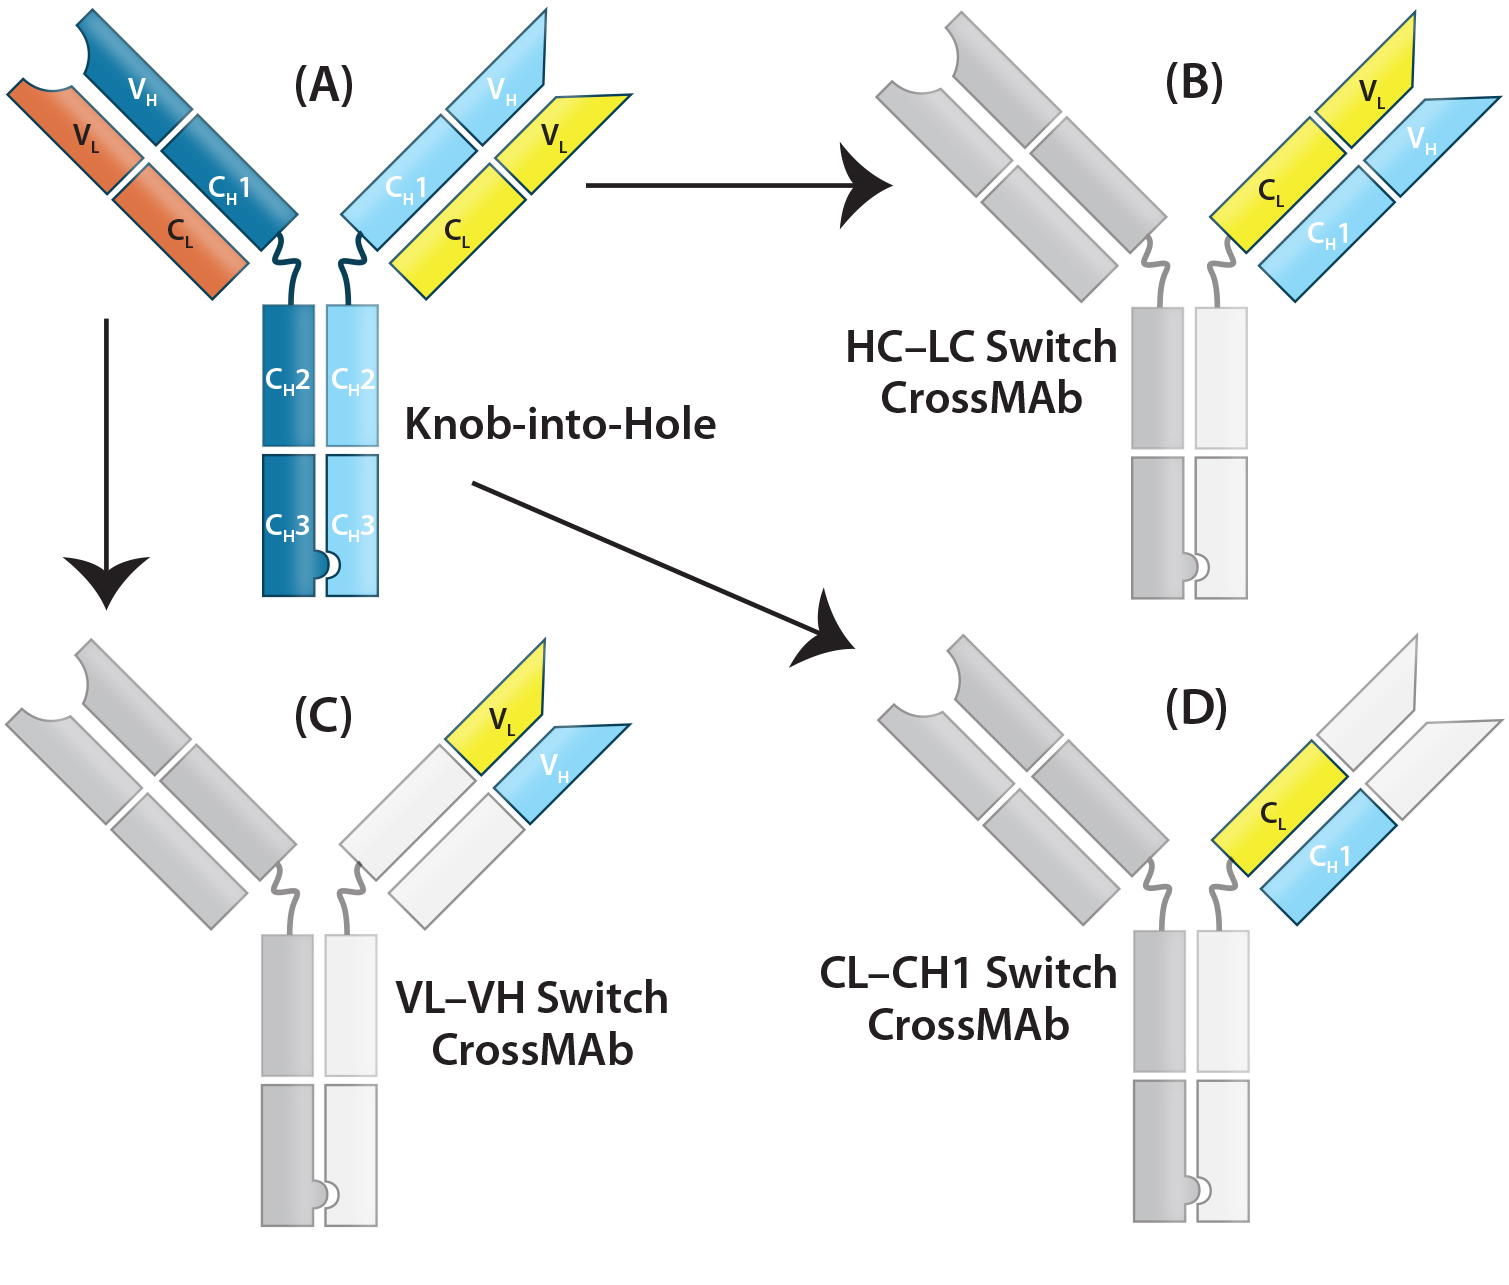 Therapeutic Igg Like Bispecific Antibodies Modular Versatility And Split Charge Switchc A Brooks 2005 Figure 3 Crossmab Structure The Technology Uses Combination Of Kih To Promote Hc Heterodimerization Domain Switching Between Lc